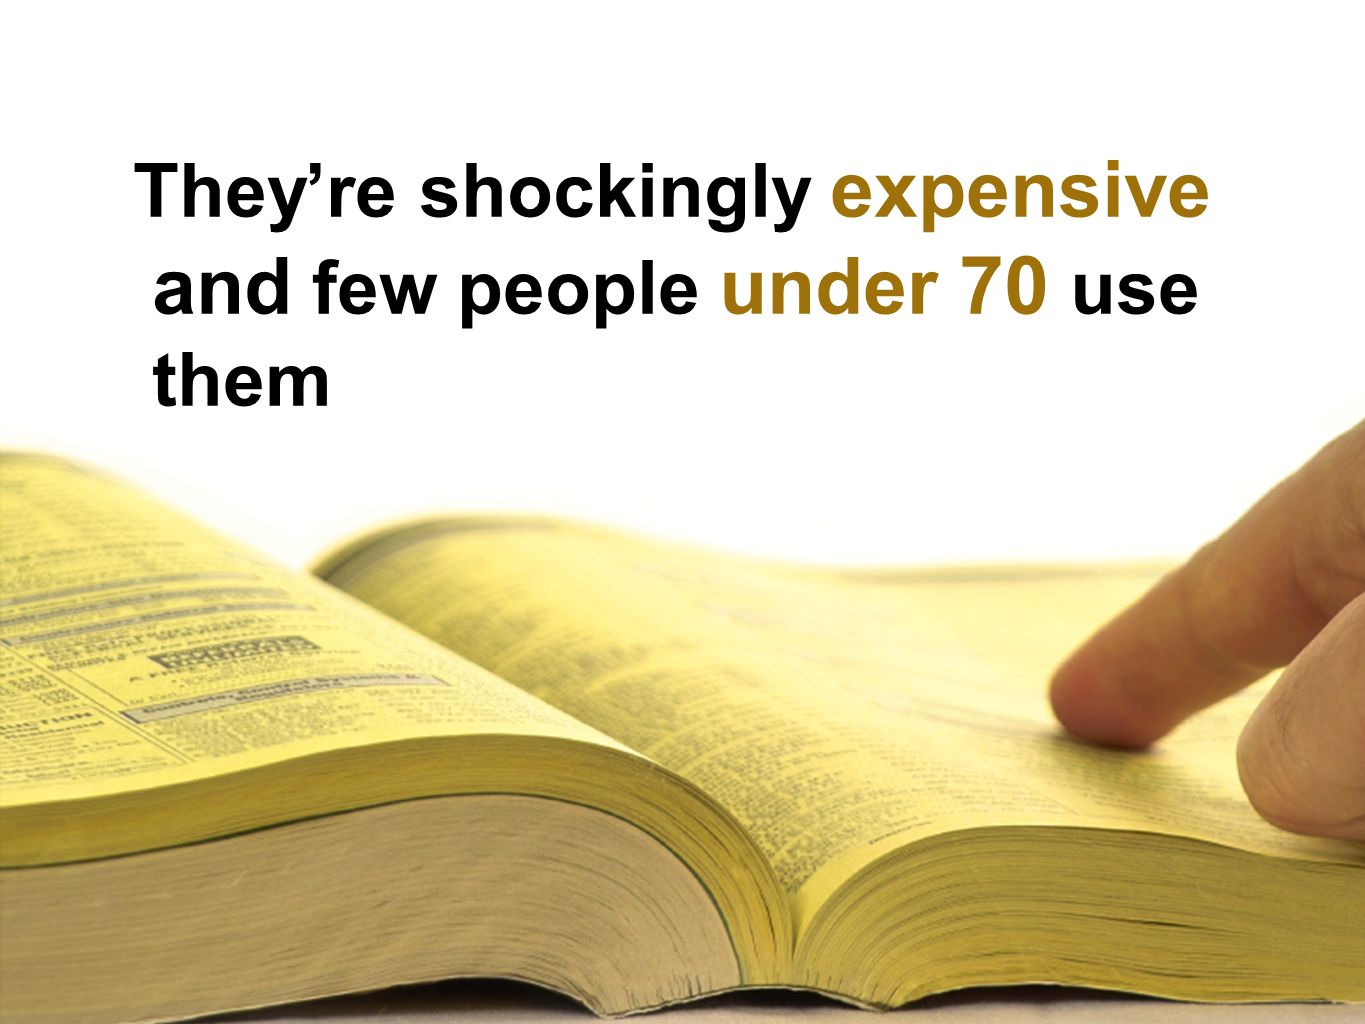 Theyre shockingly expensive and few people under 70 use them